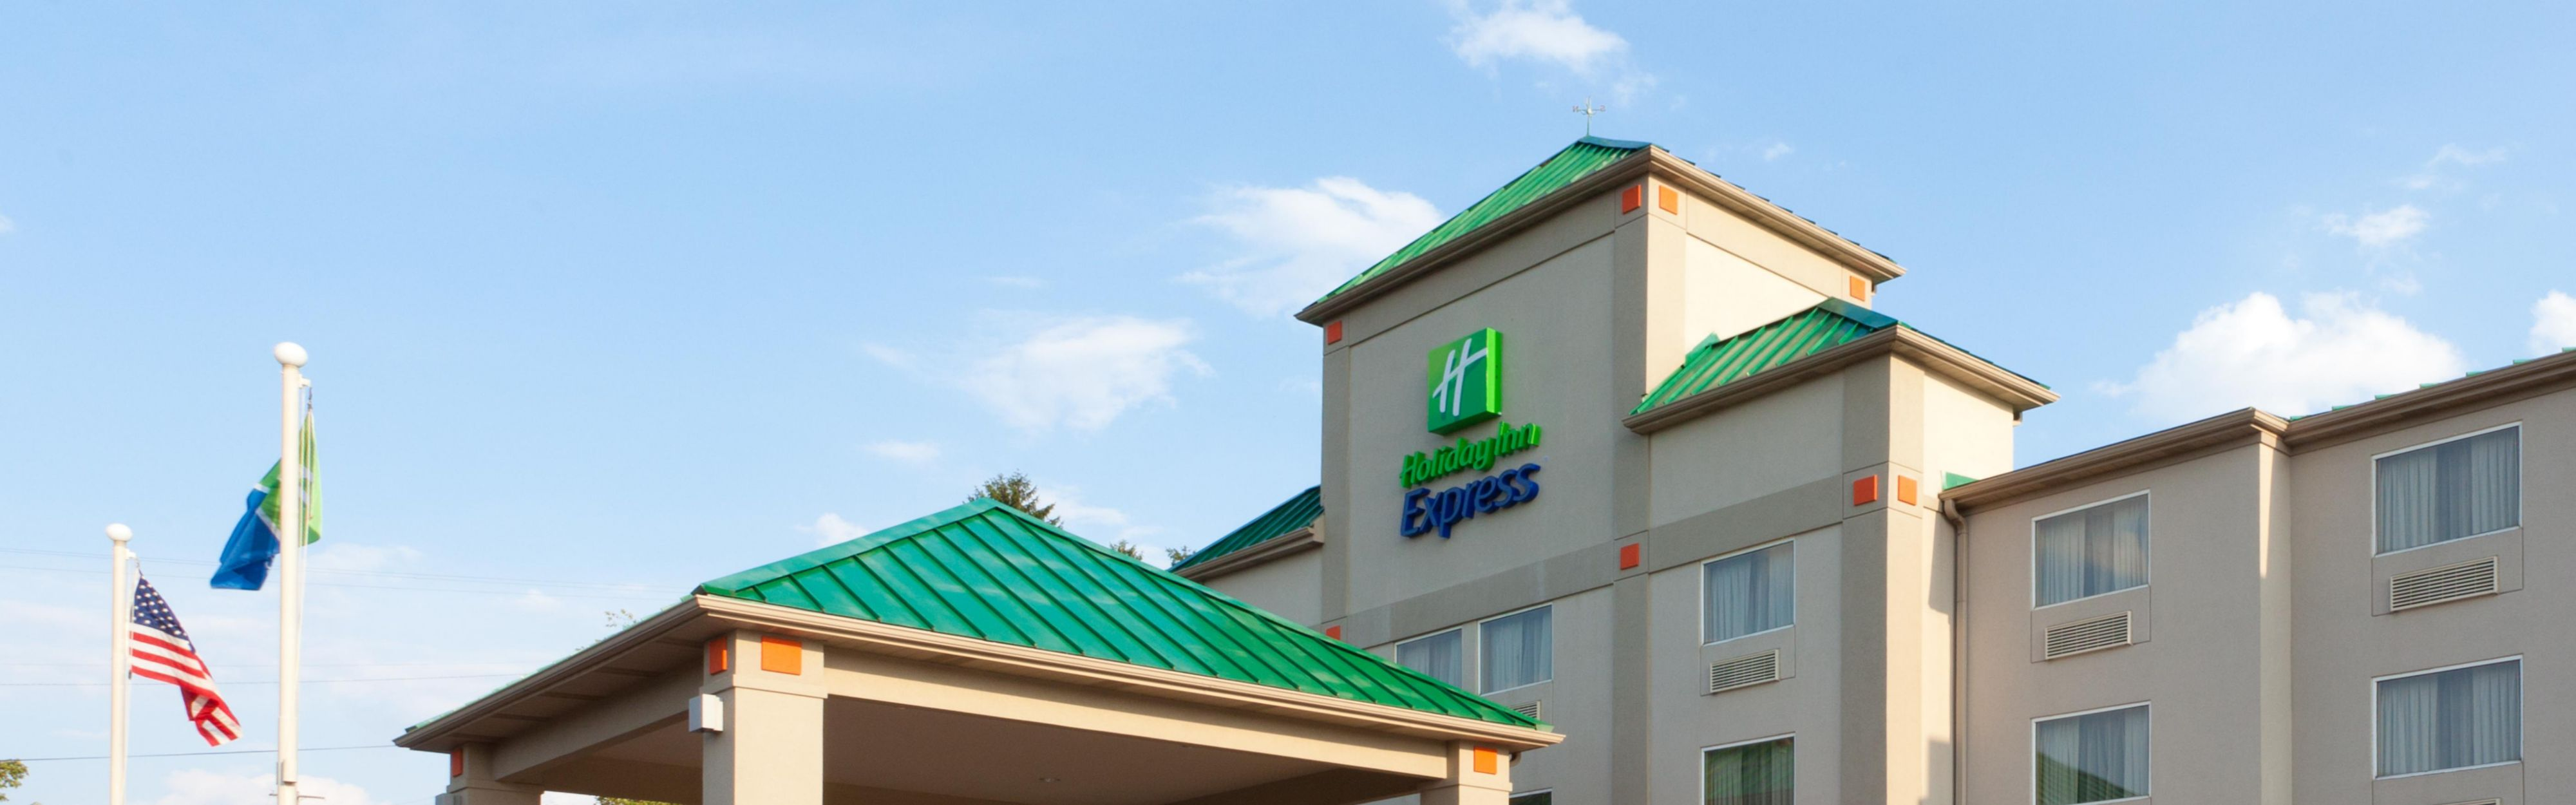 Holiday Inn Express Irwin (Pa Tpk Exit 67) image 0